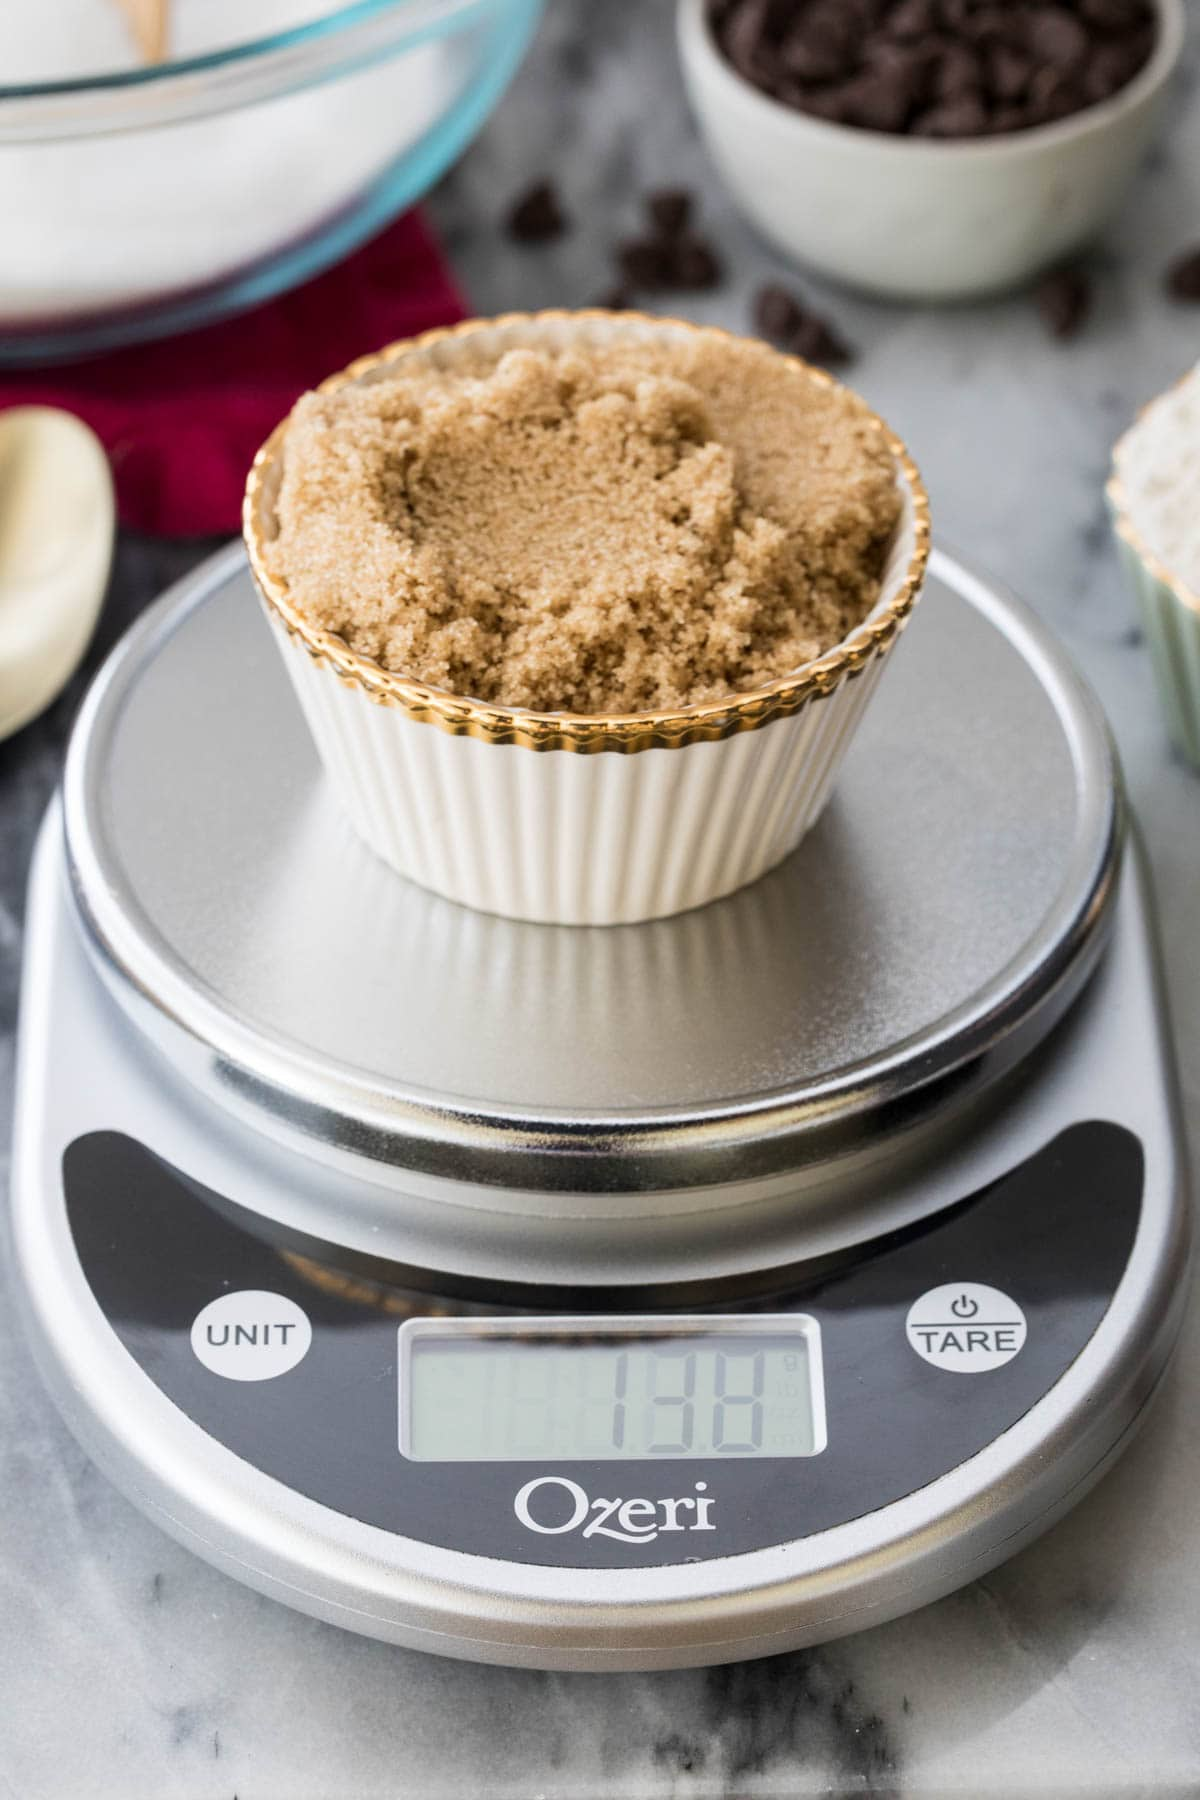 measuring brown sugar on kitchen scale